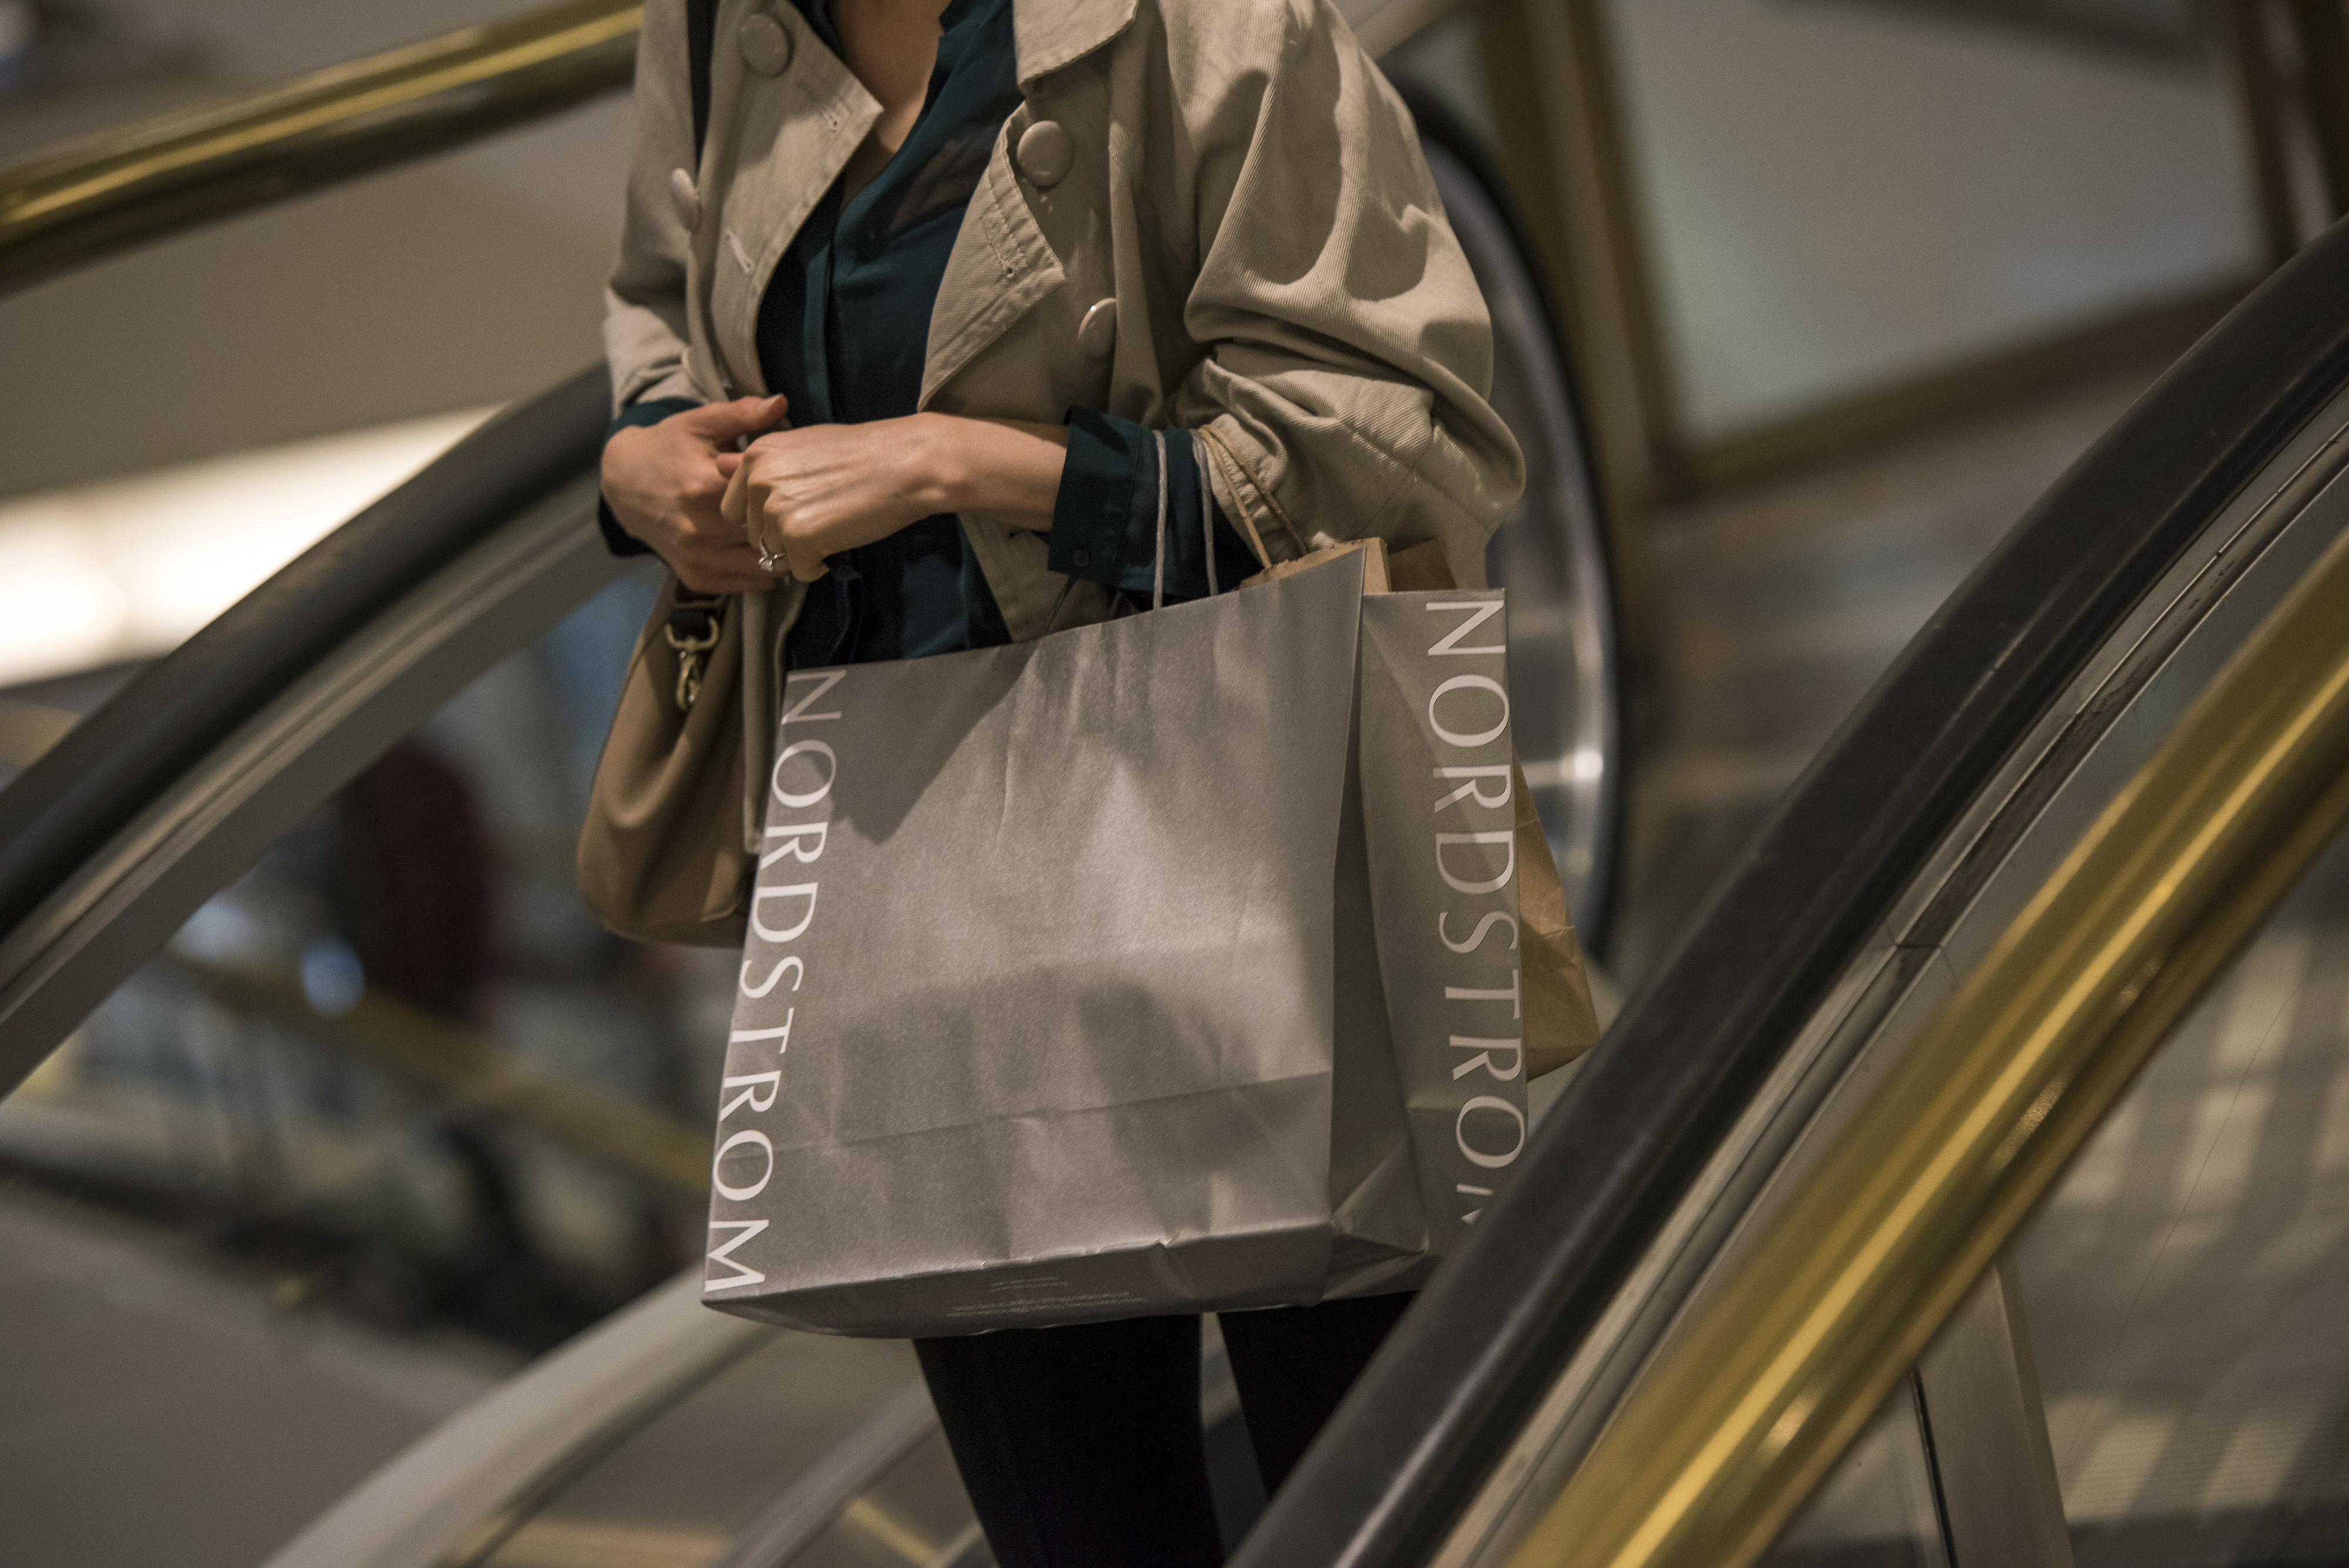 Nordstrom's Results Say Its Strategy Is Spot On